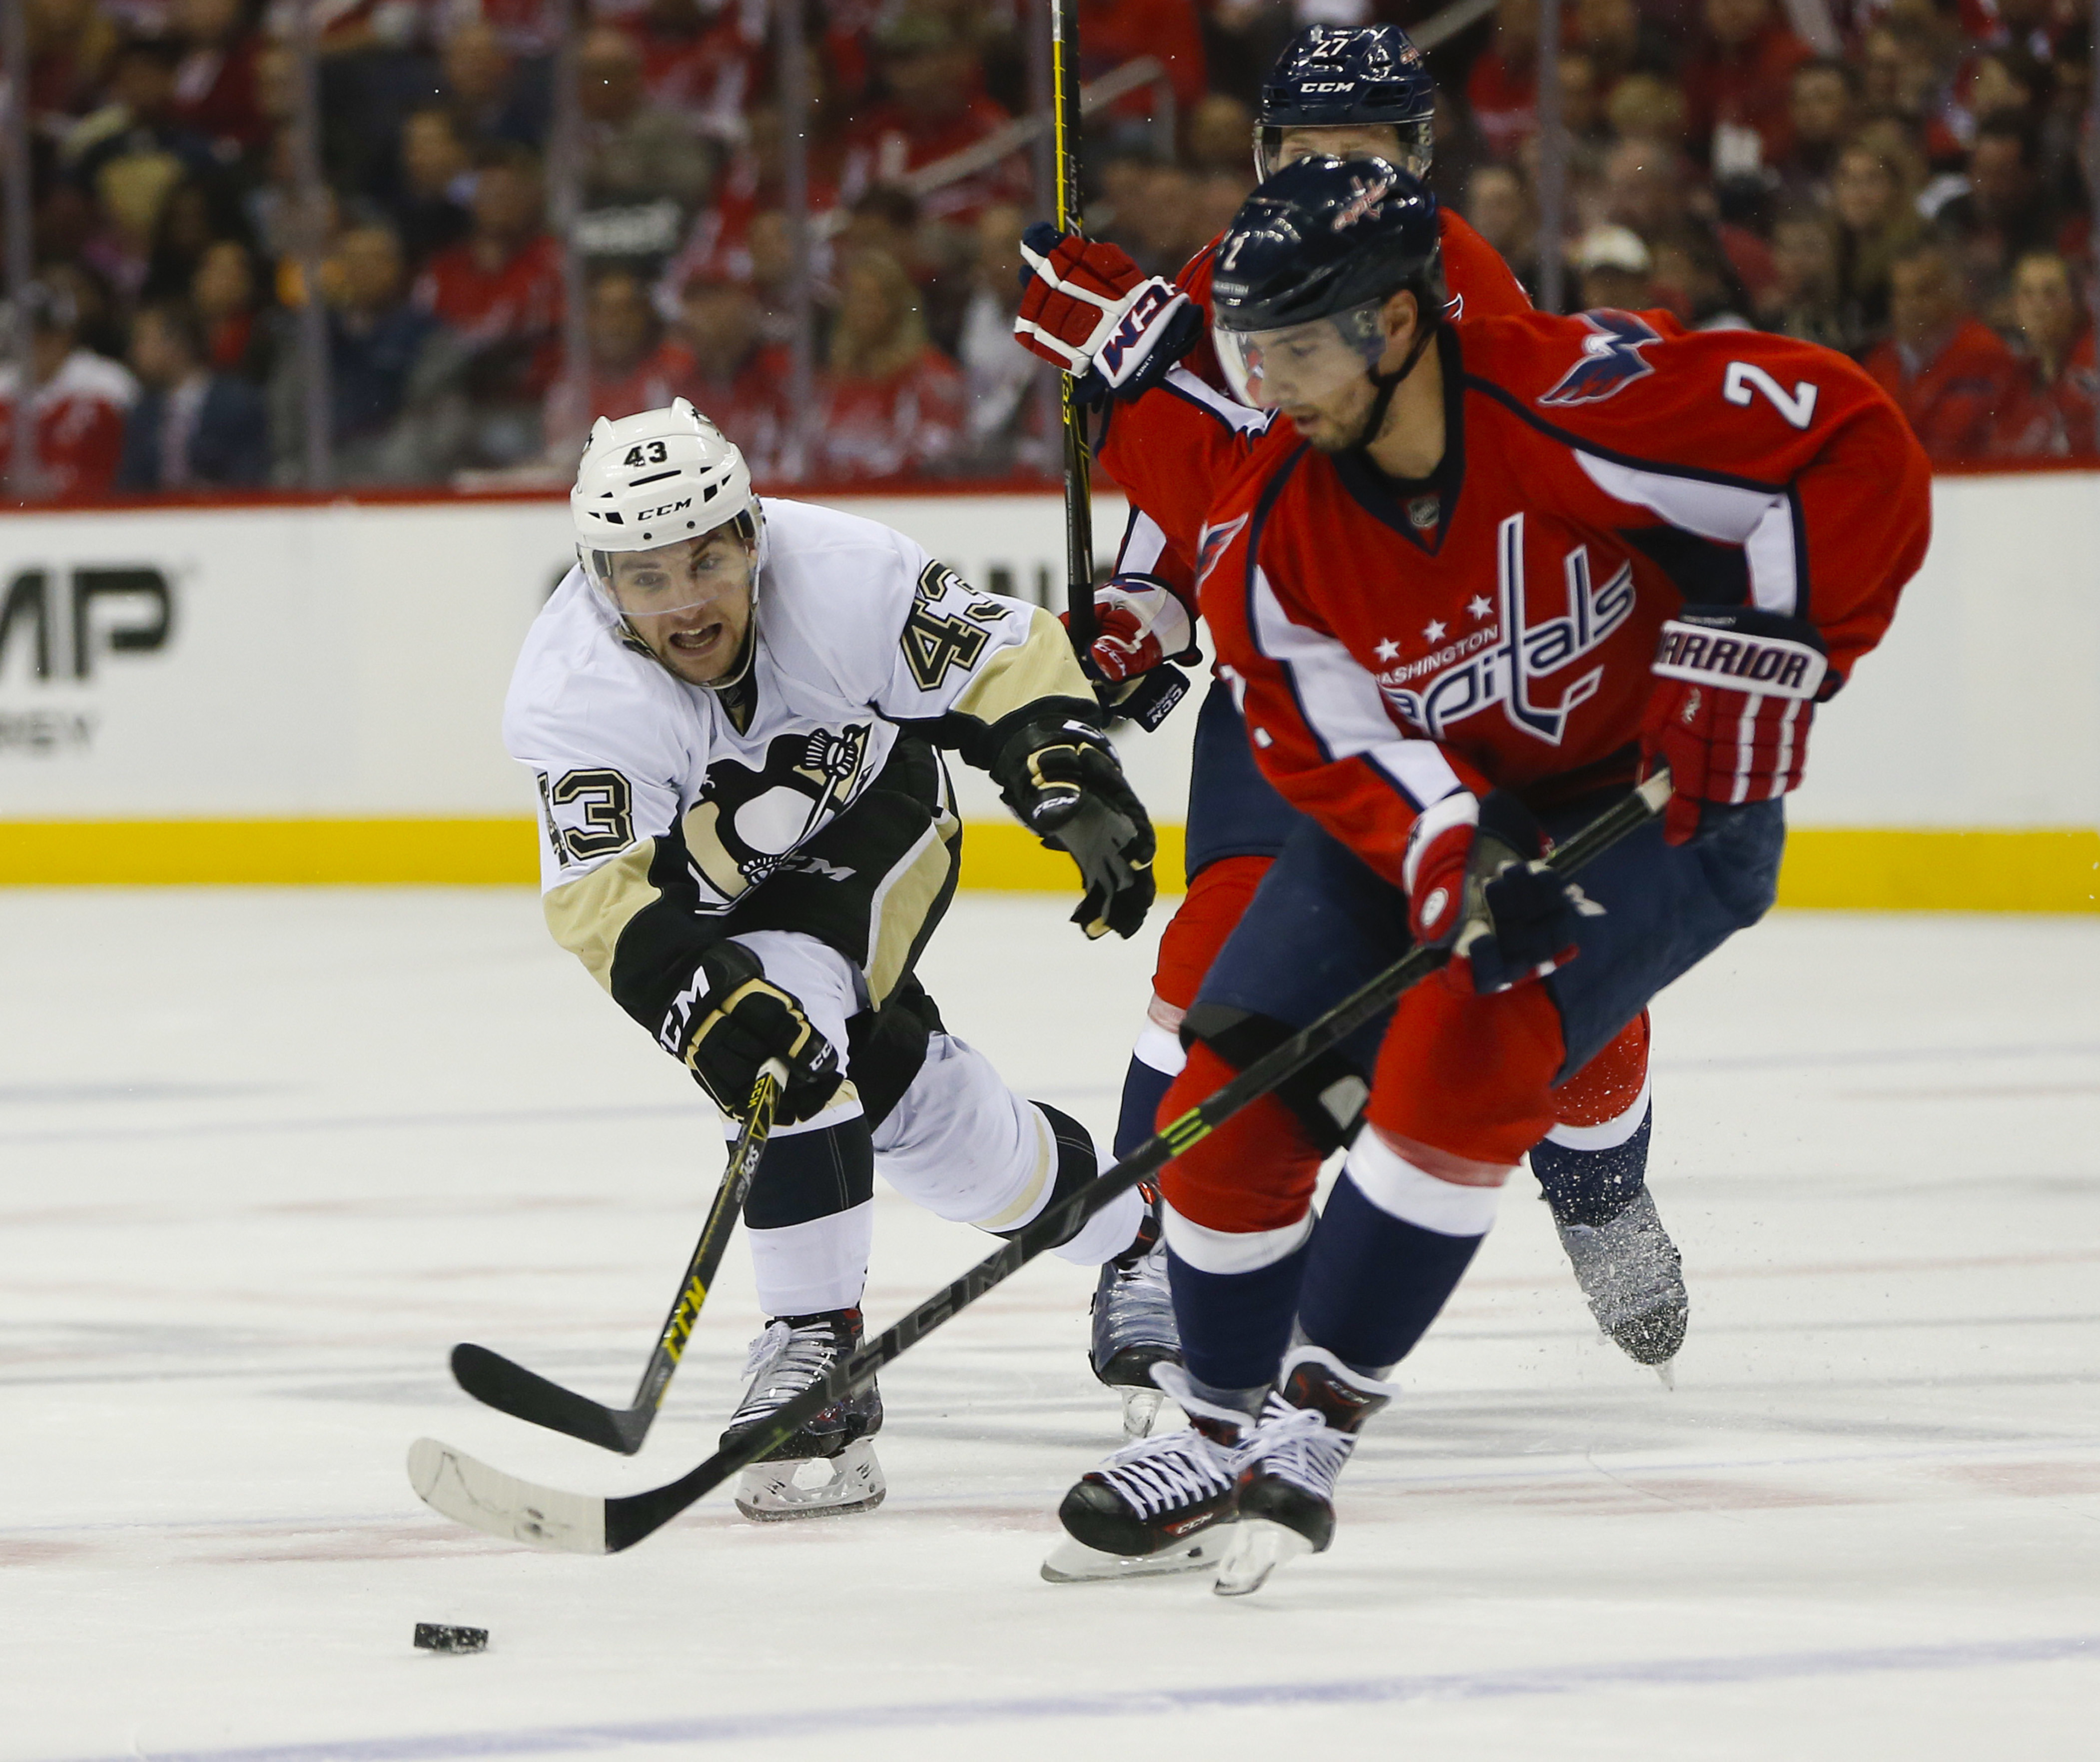 Pittsburgh Penguins left wing Conor Sheary (43) goes up against Washington Capitals defenseman Matt Niskanen (2) and defenseman Karl Alzner (27) for the loose puck during the first period of Game 1 in an NHL hockey Stanley Cup Eastern Conference semifinal